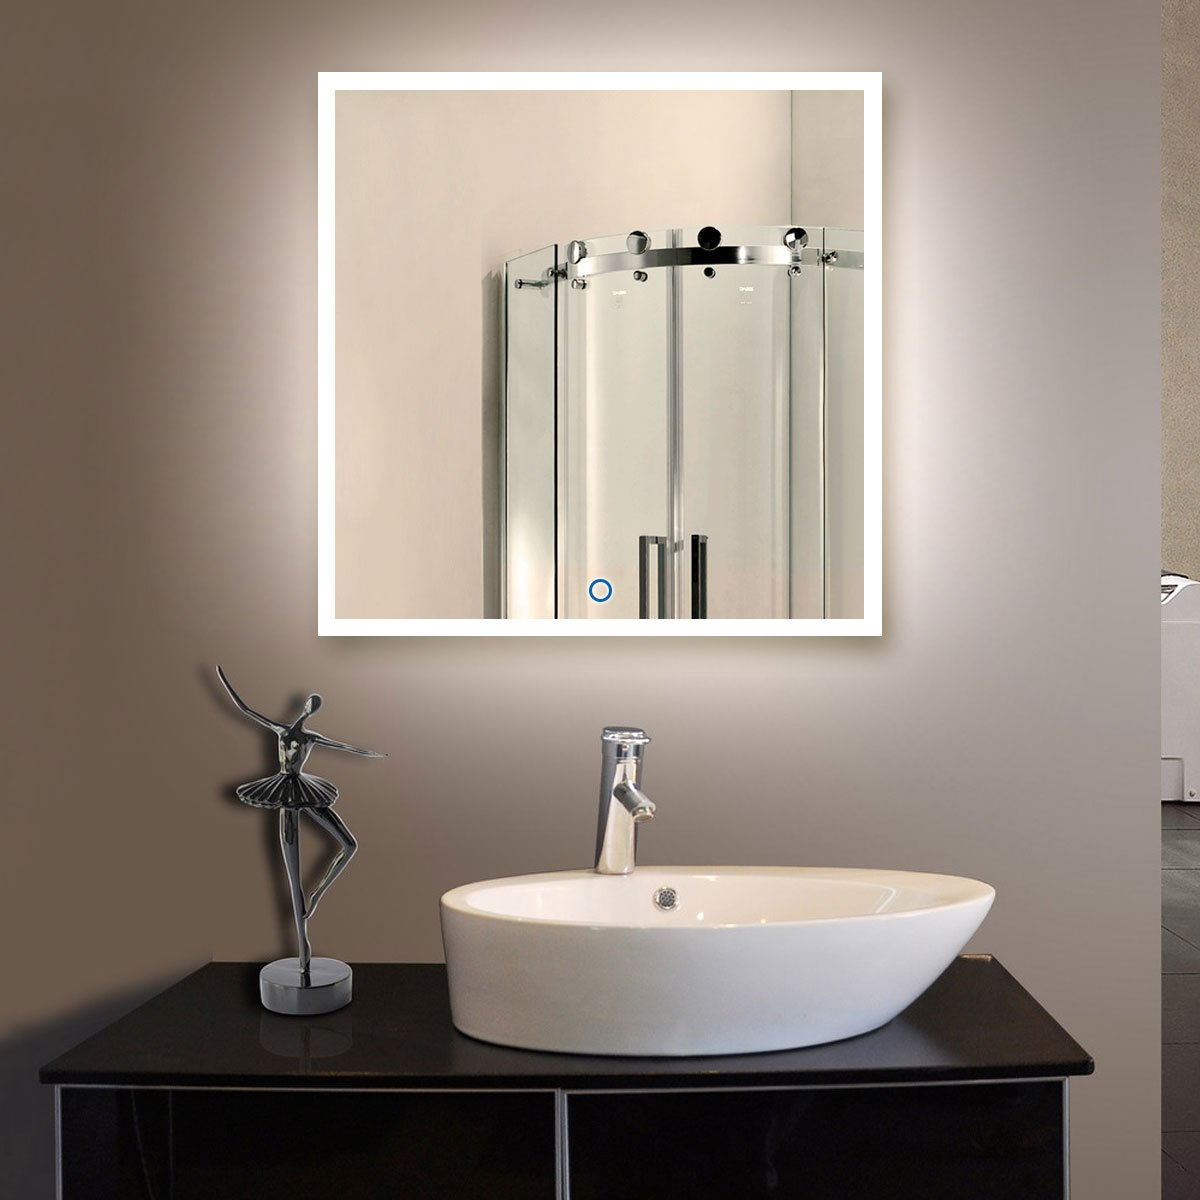 Amazon decoraport 84 inch 40 inch horizontal led wall mounted amazon decoraport 84 inch 40 inch horizontal led wall mounted lighted vanity bathroom silvered mirror with touch button a n031 a home kitchen aloadofball Images